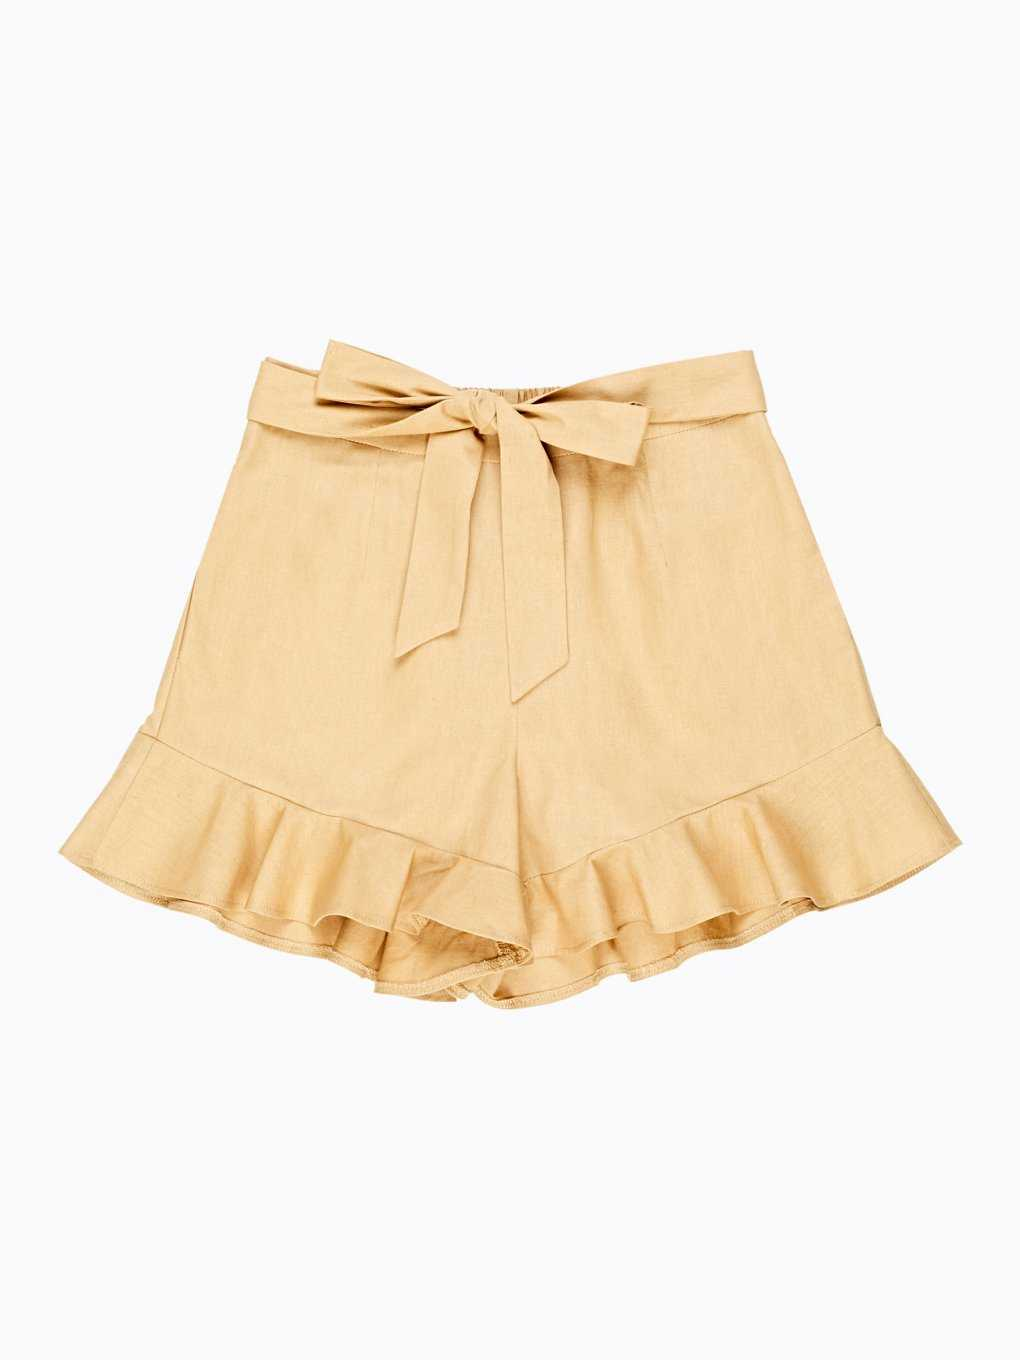 Shorts with ruffles